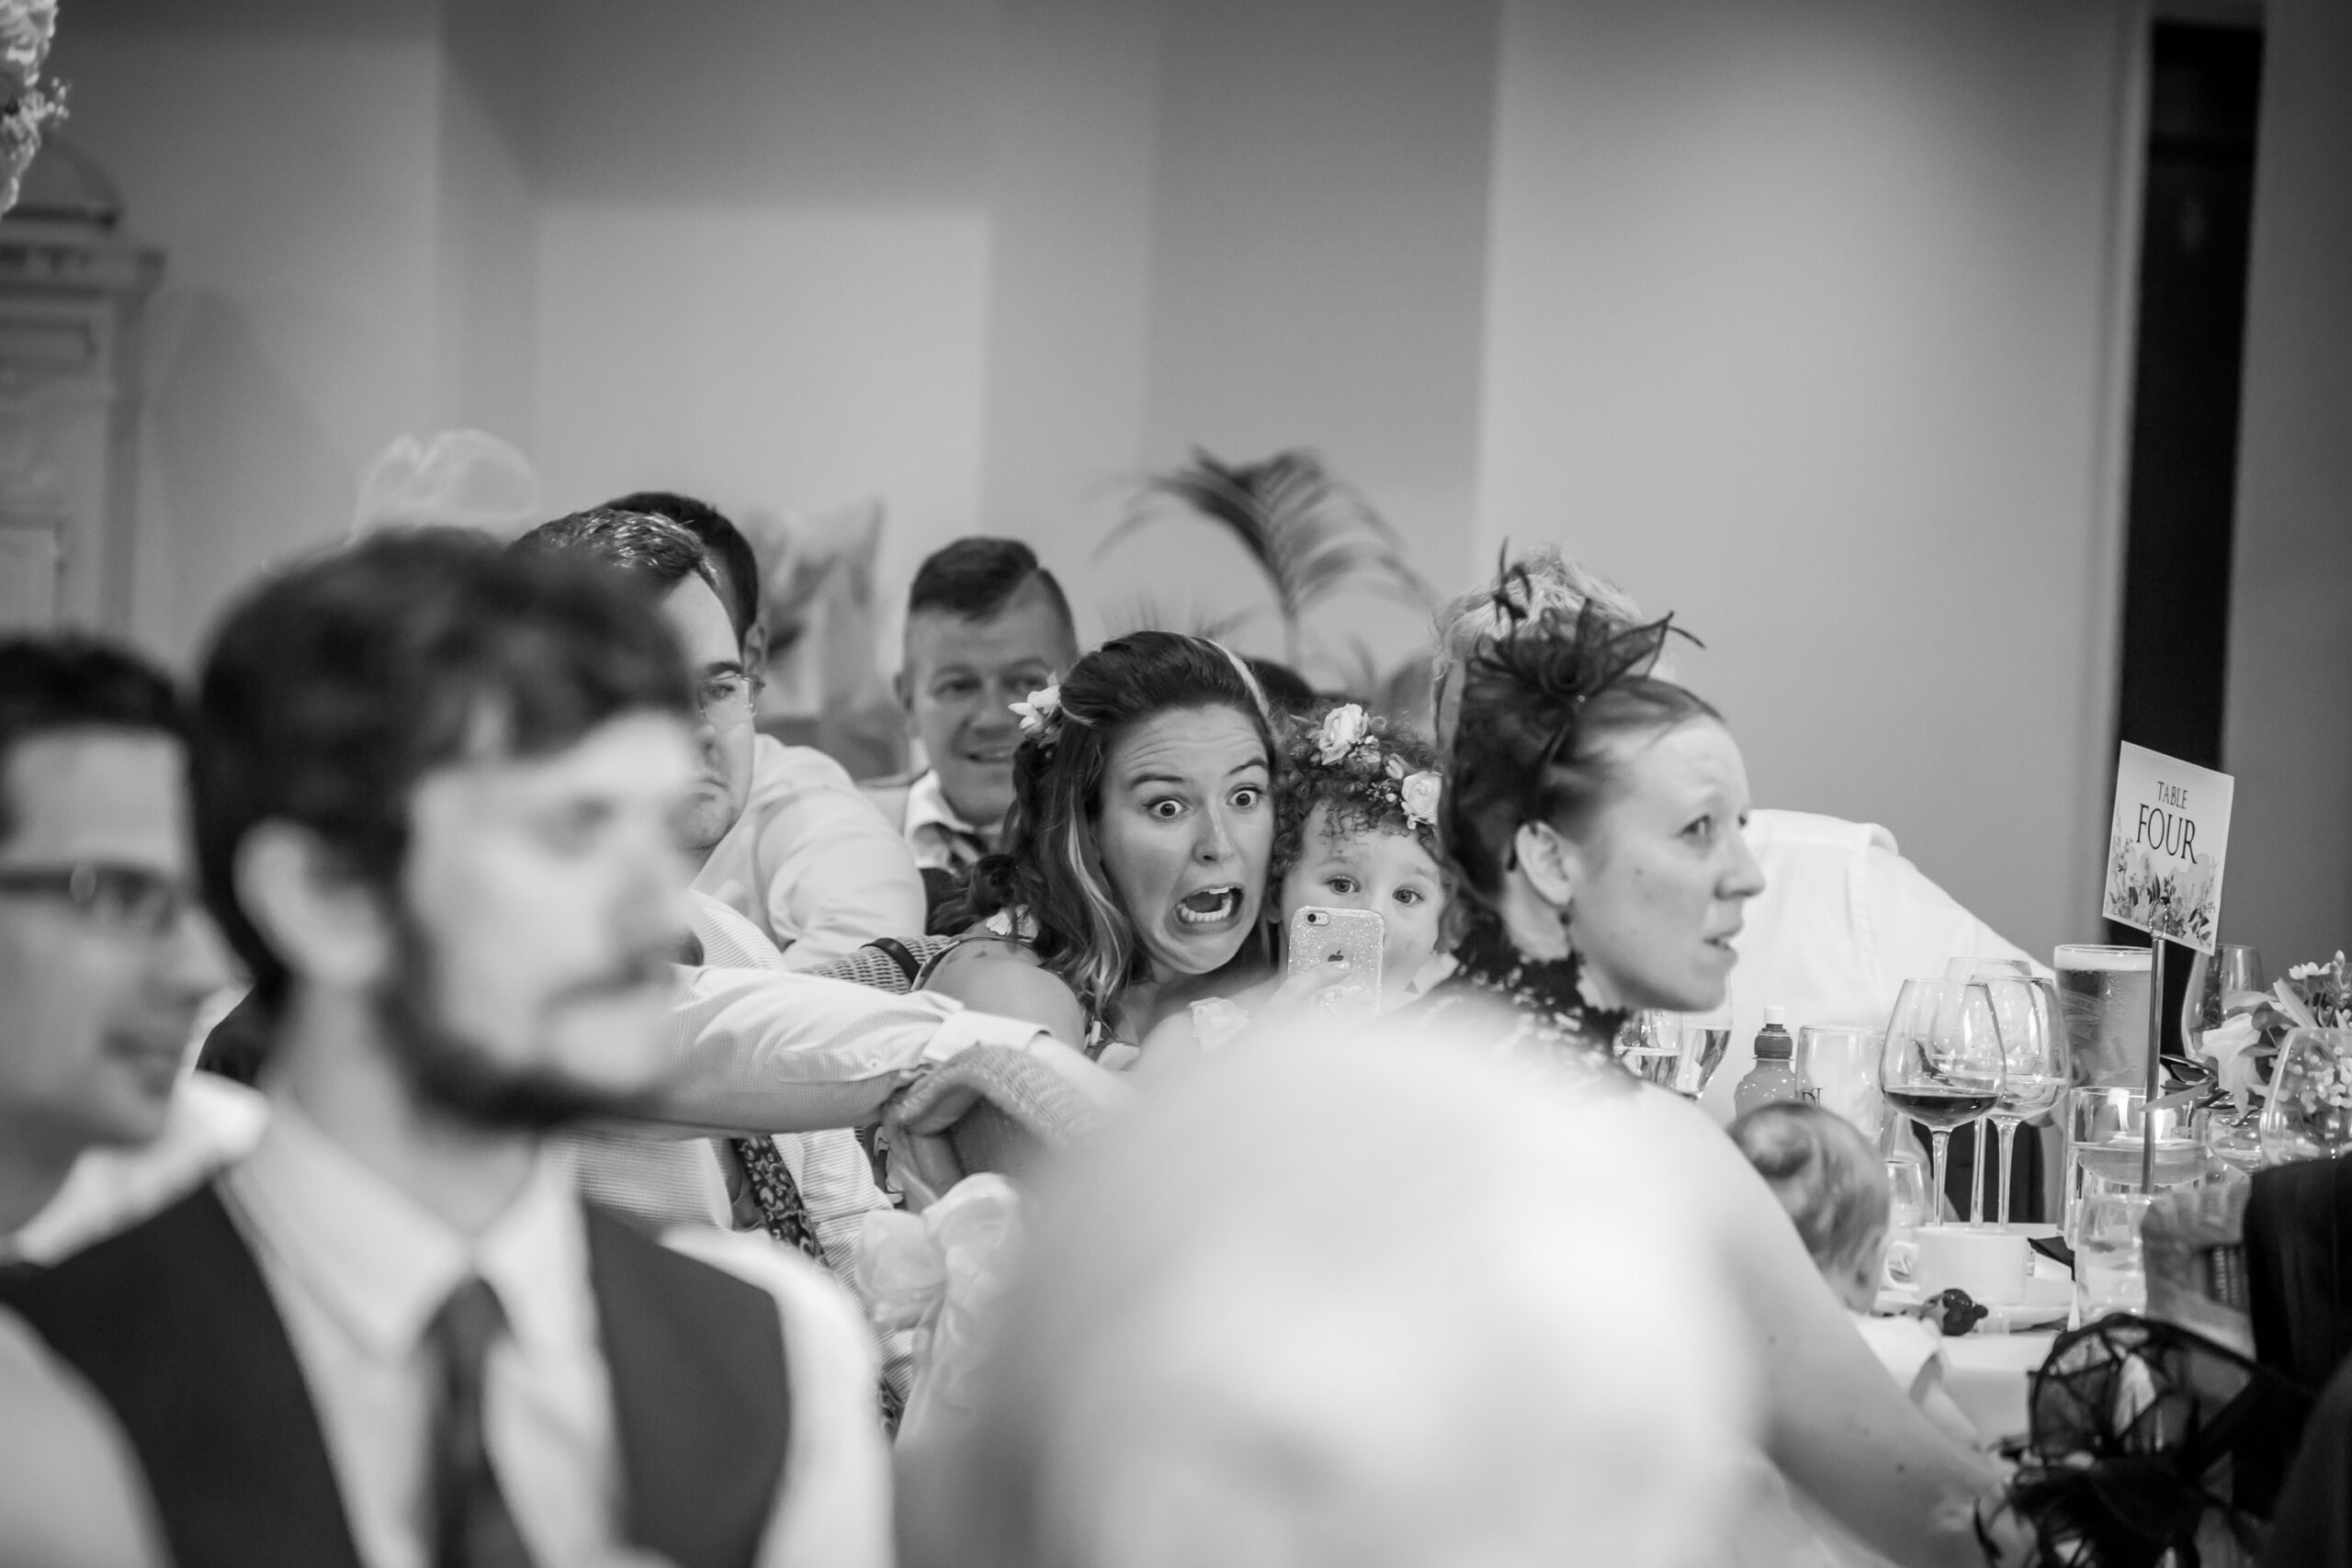 wedding guest has shocked look at phone during the speeches